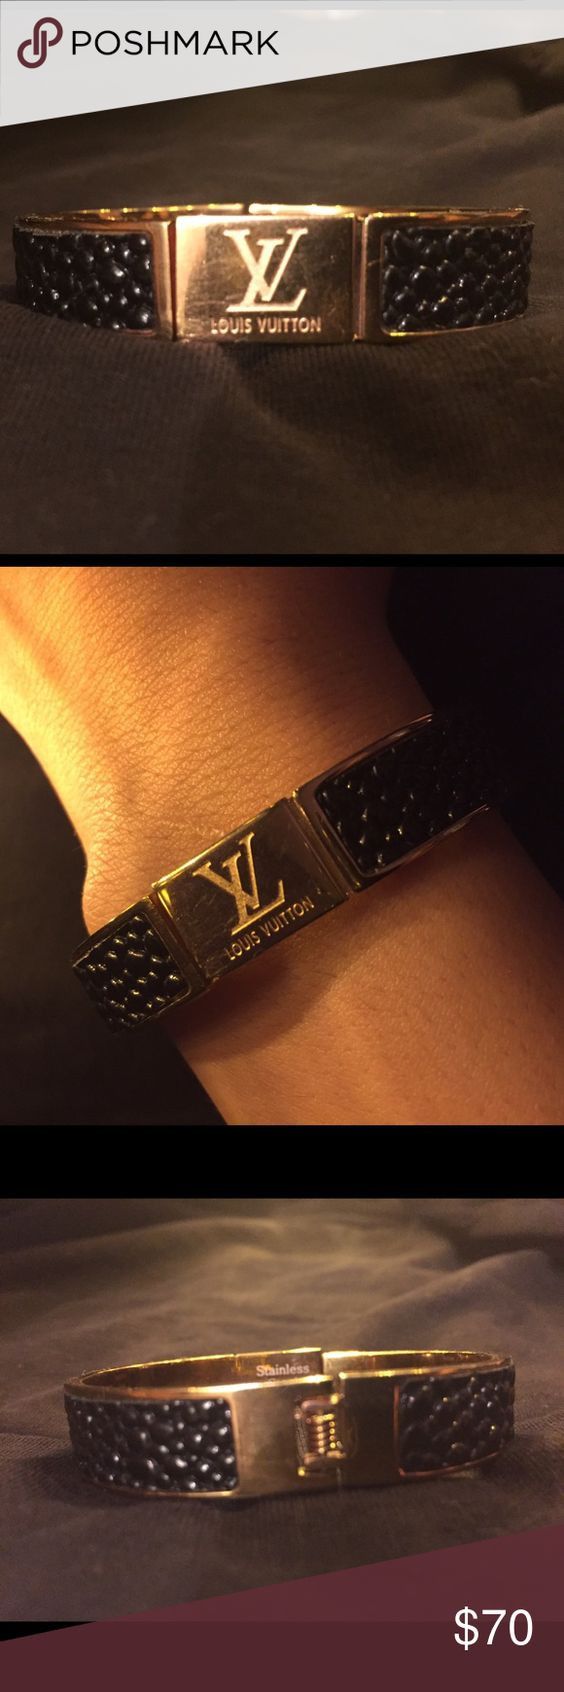 Louis vuitton bracelet new never used nwt d bracelets and tags